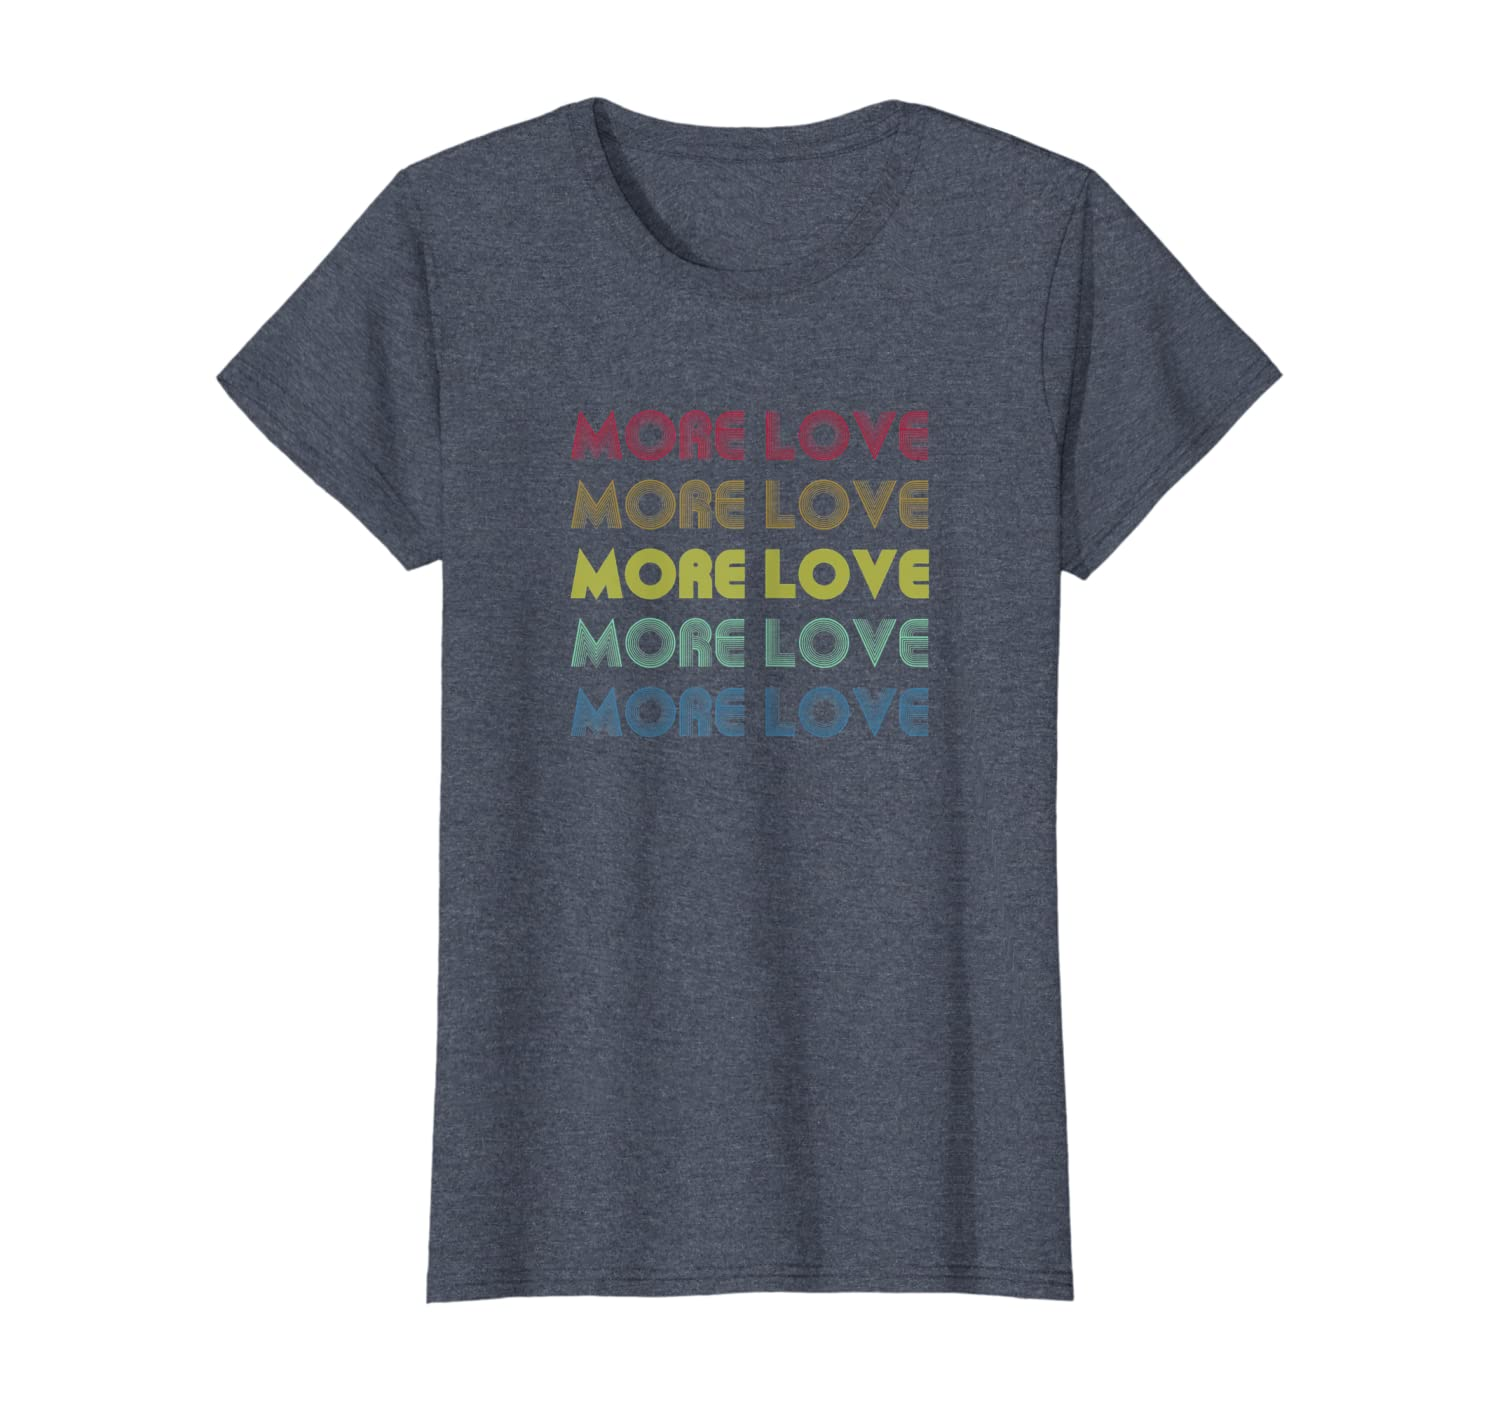 more love t shirt